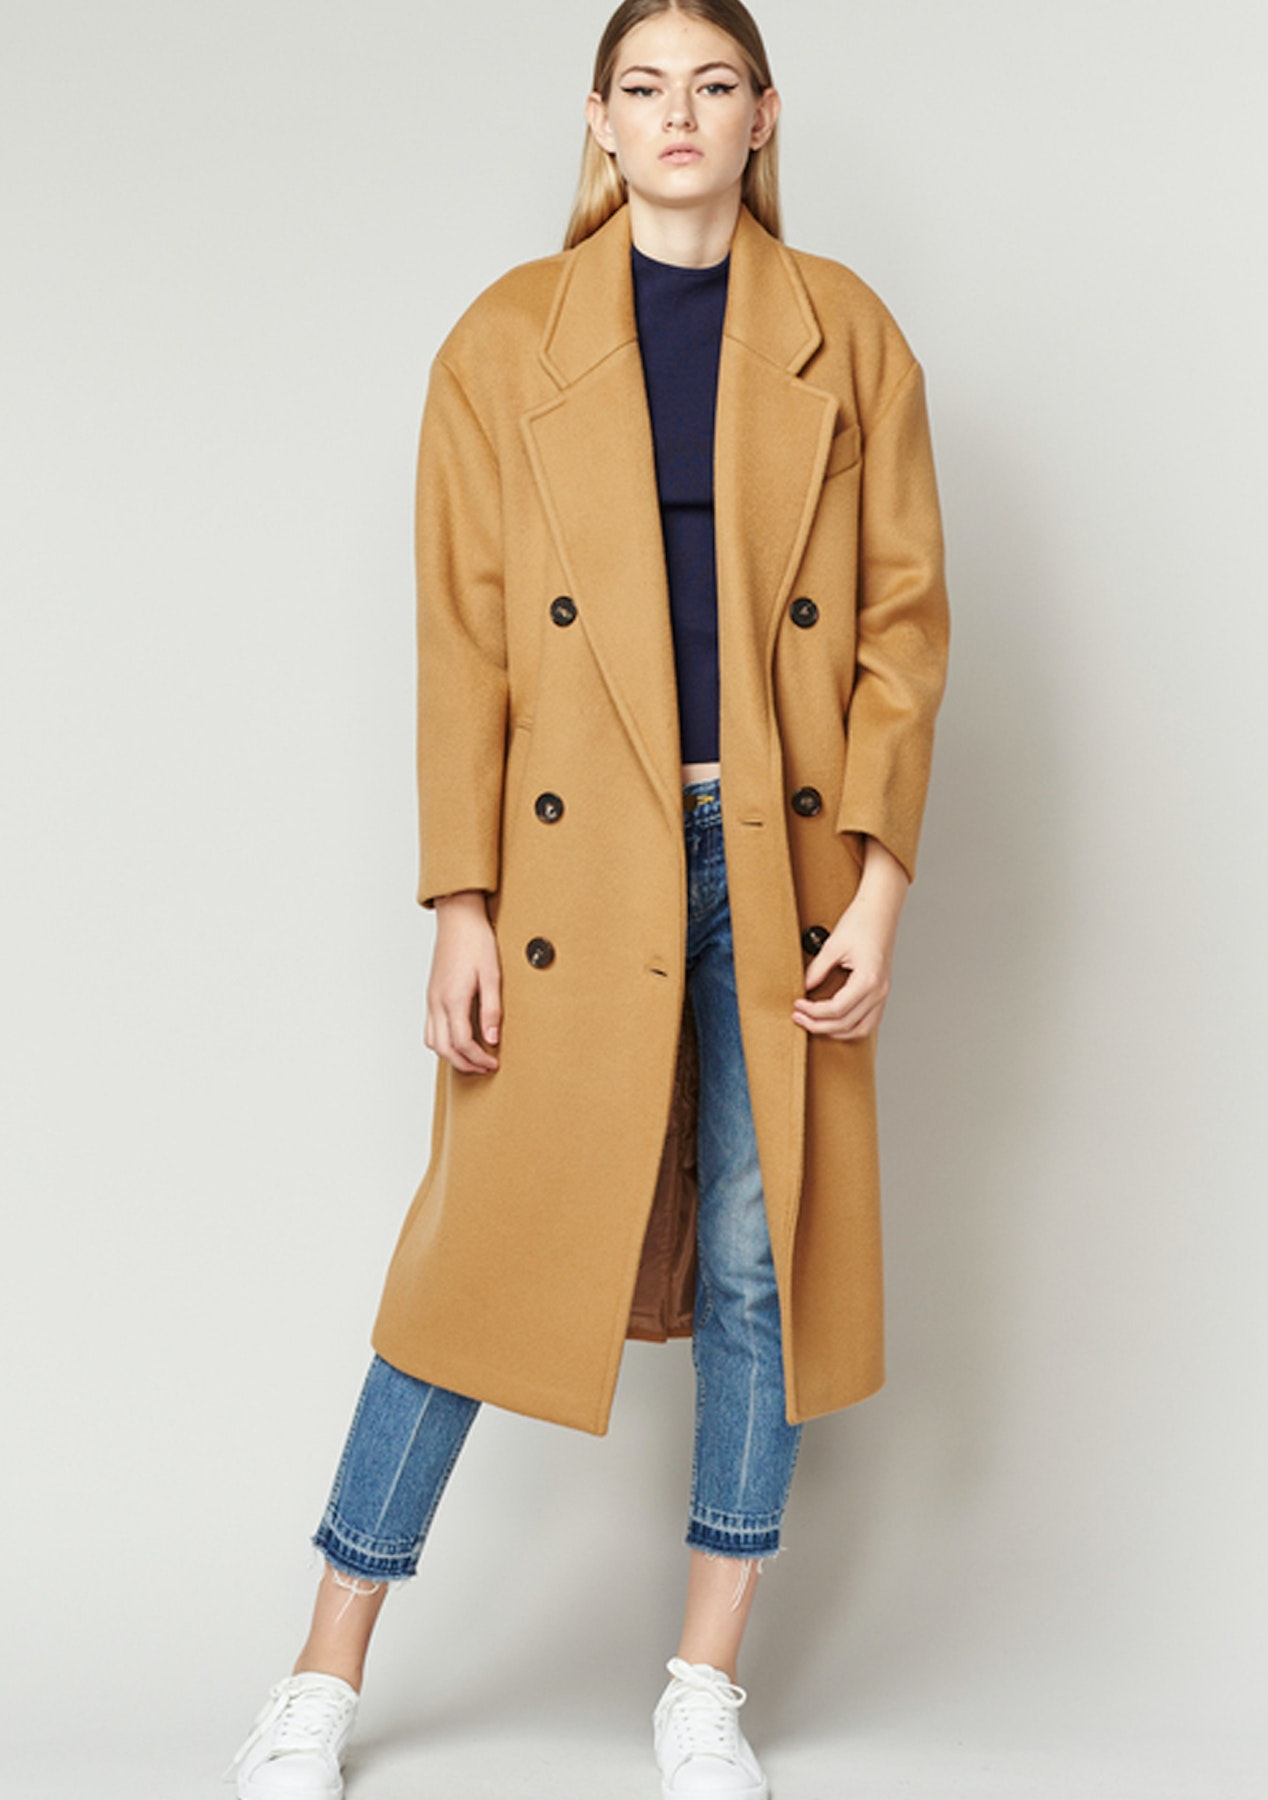 Achro - Long Wool Coat - CAMEL - Womens Rummage Rack from $9.95 ...